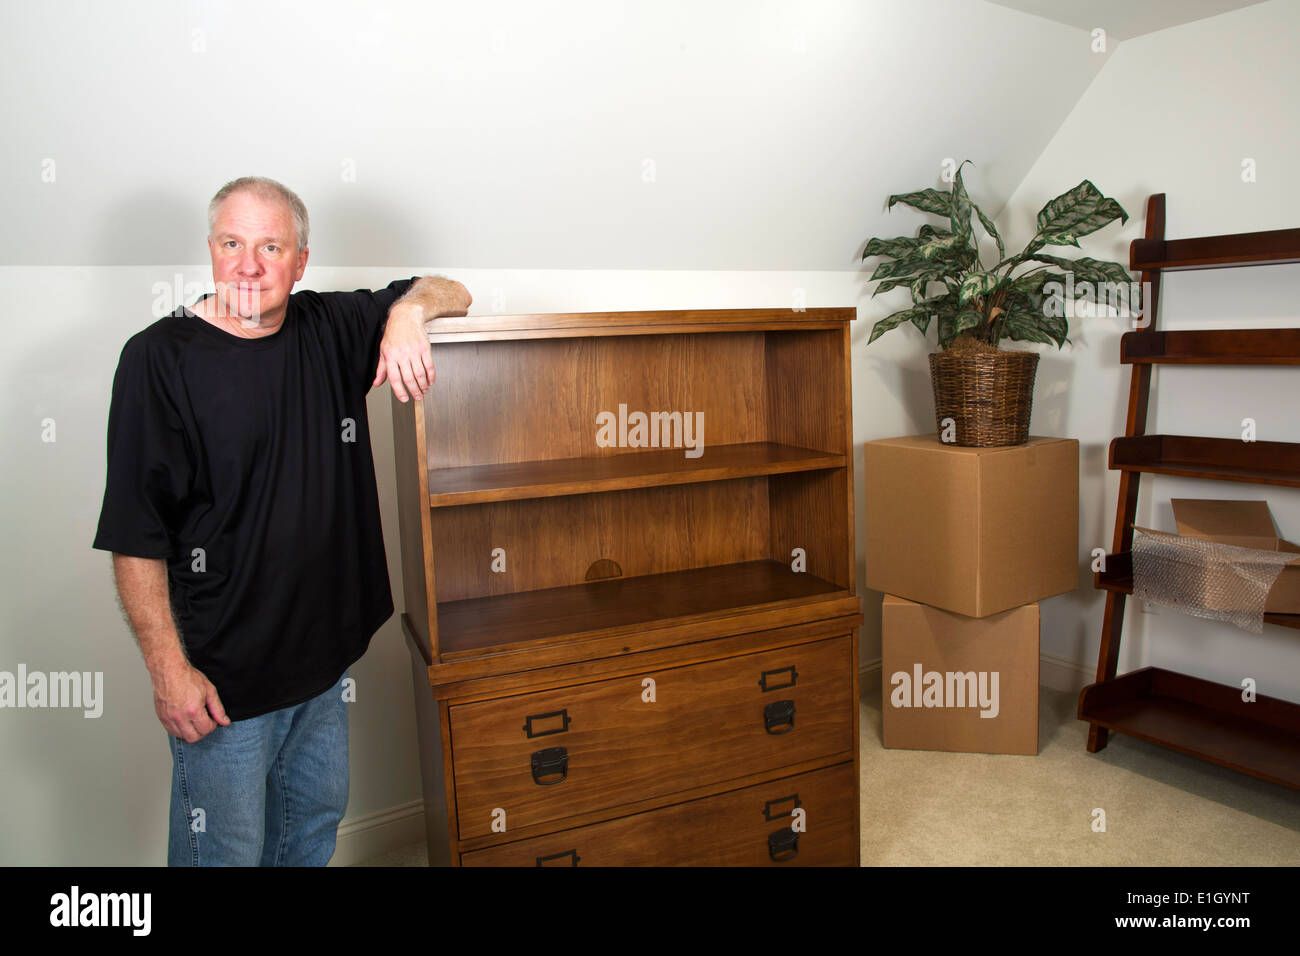 Man standing next to bare furniture and moving boxes in his new home - Stock Image